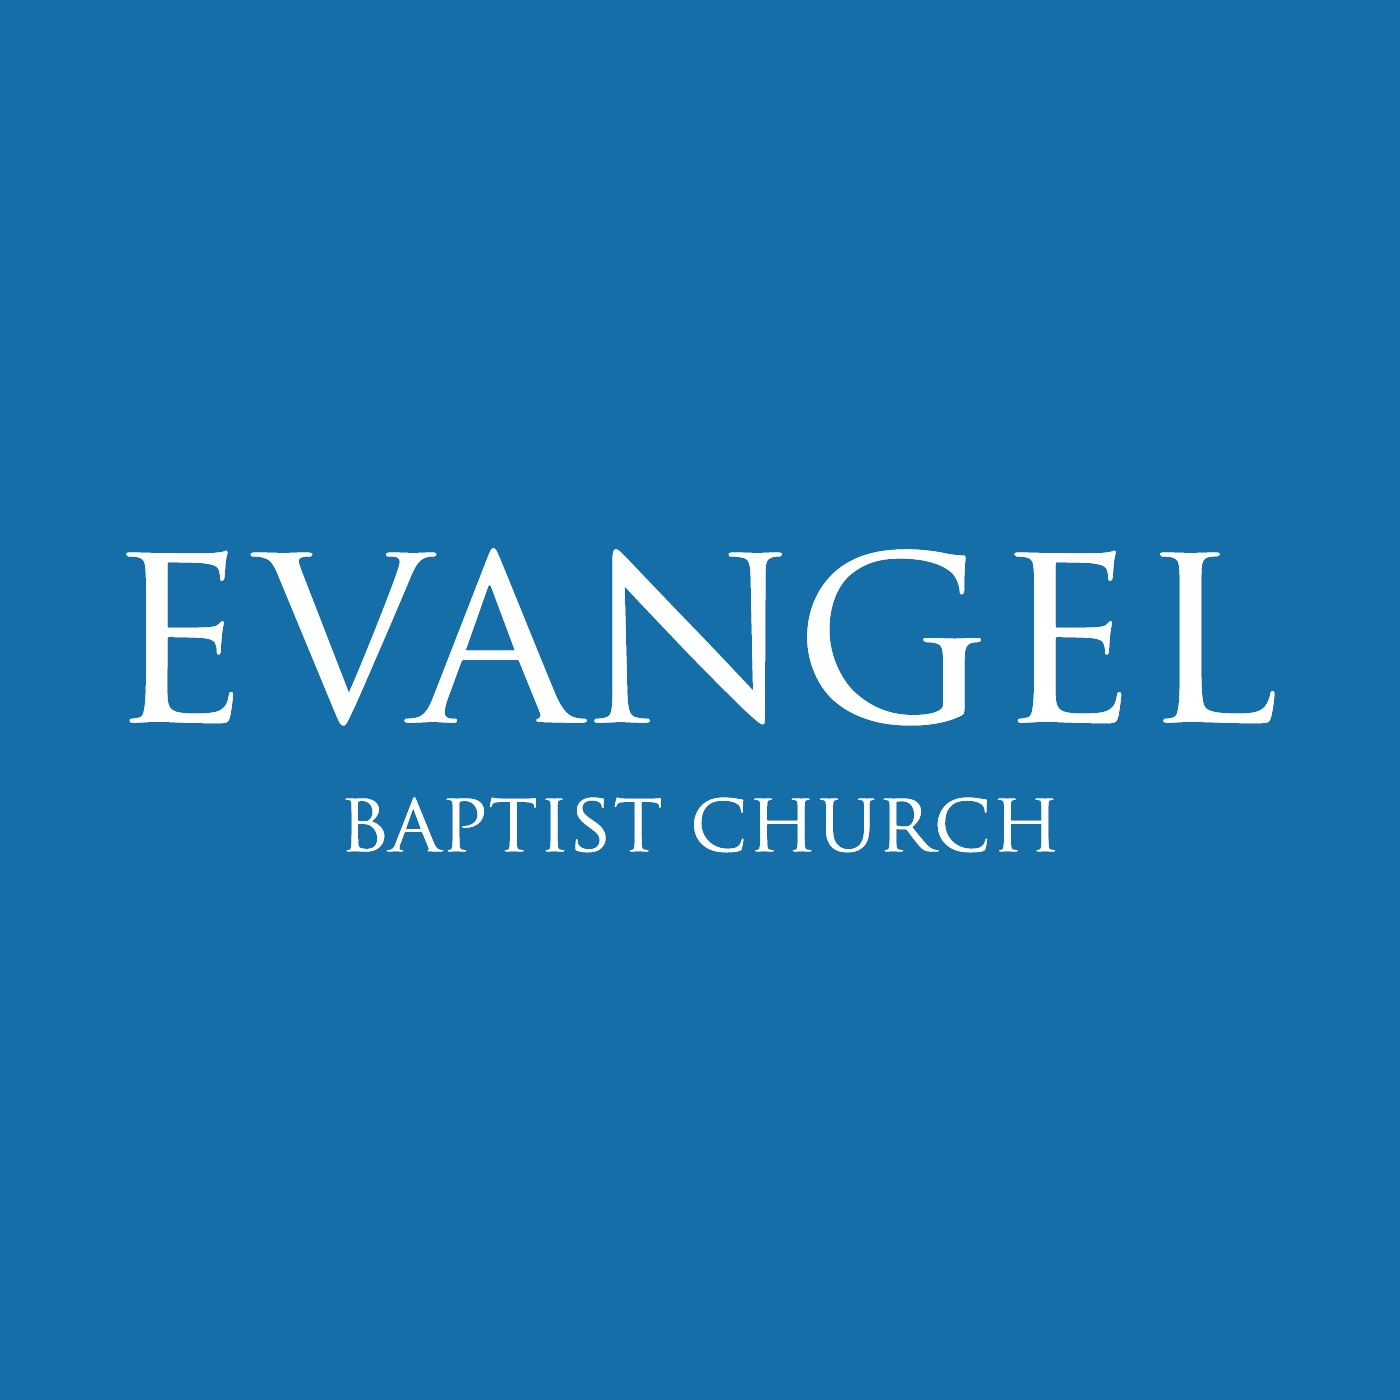 Evangel Baptist Church, Taylor, Michigan